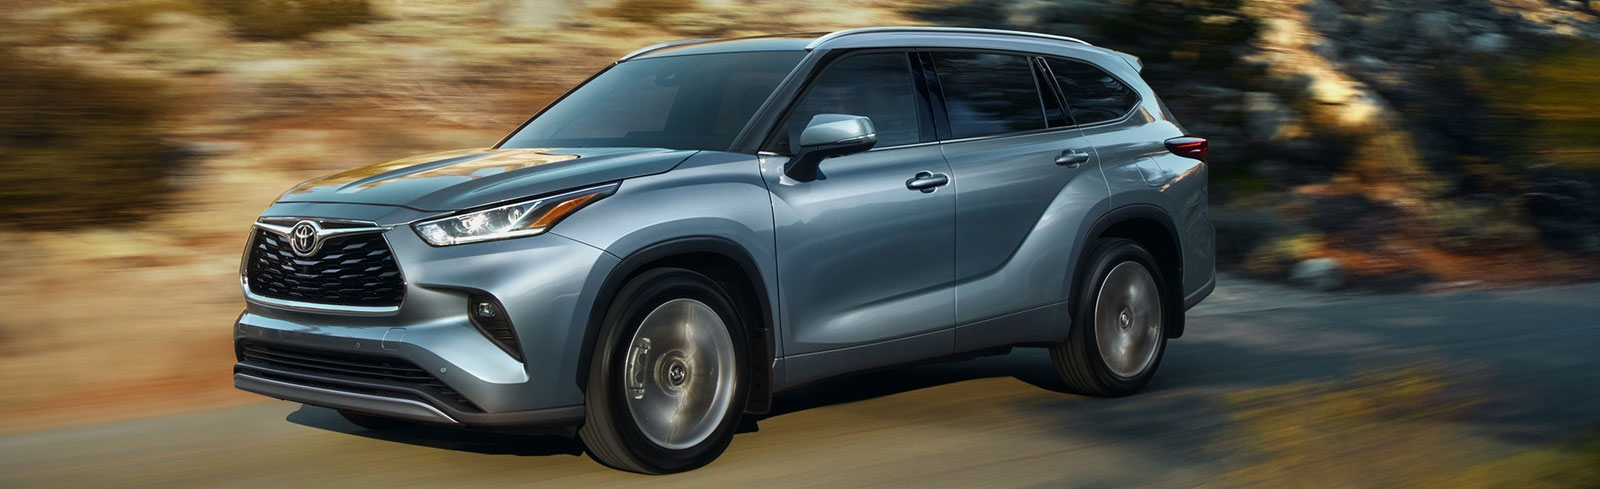 All New 2020 Toyota Highlander for Sale at Future Toyota of Yuba City